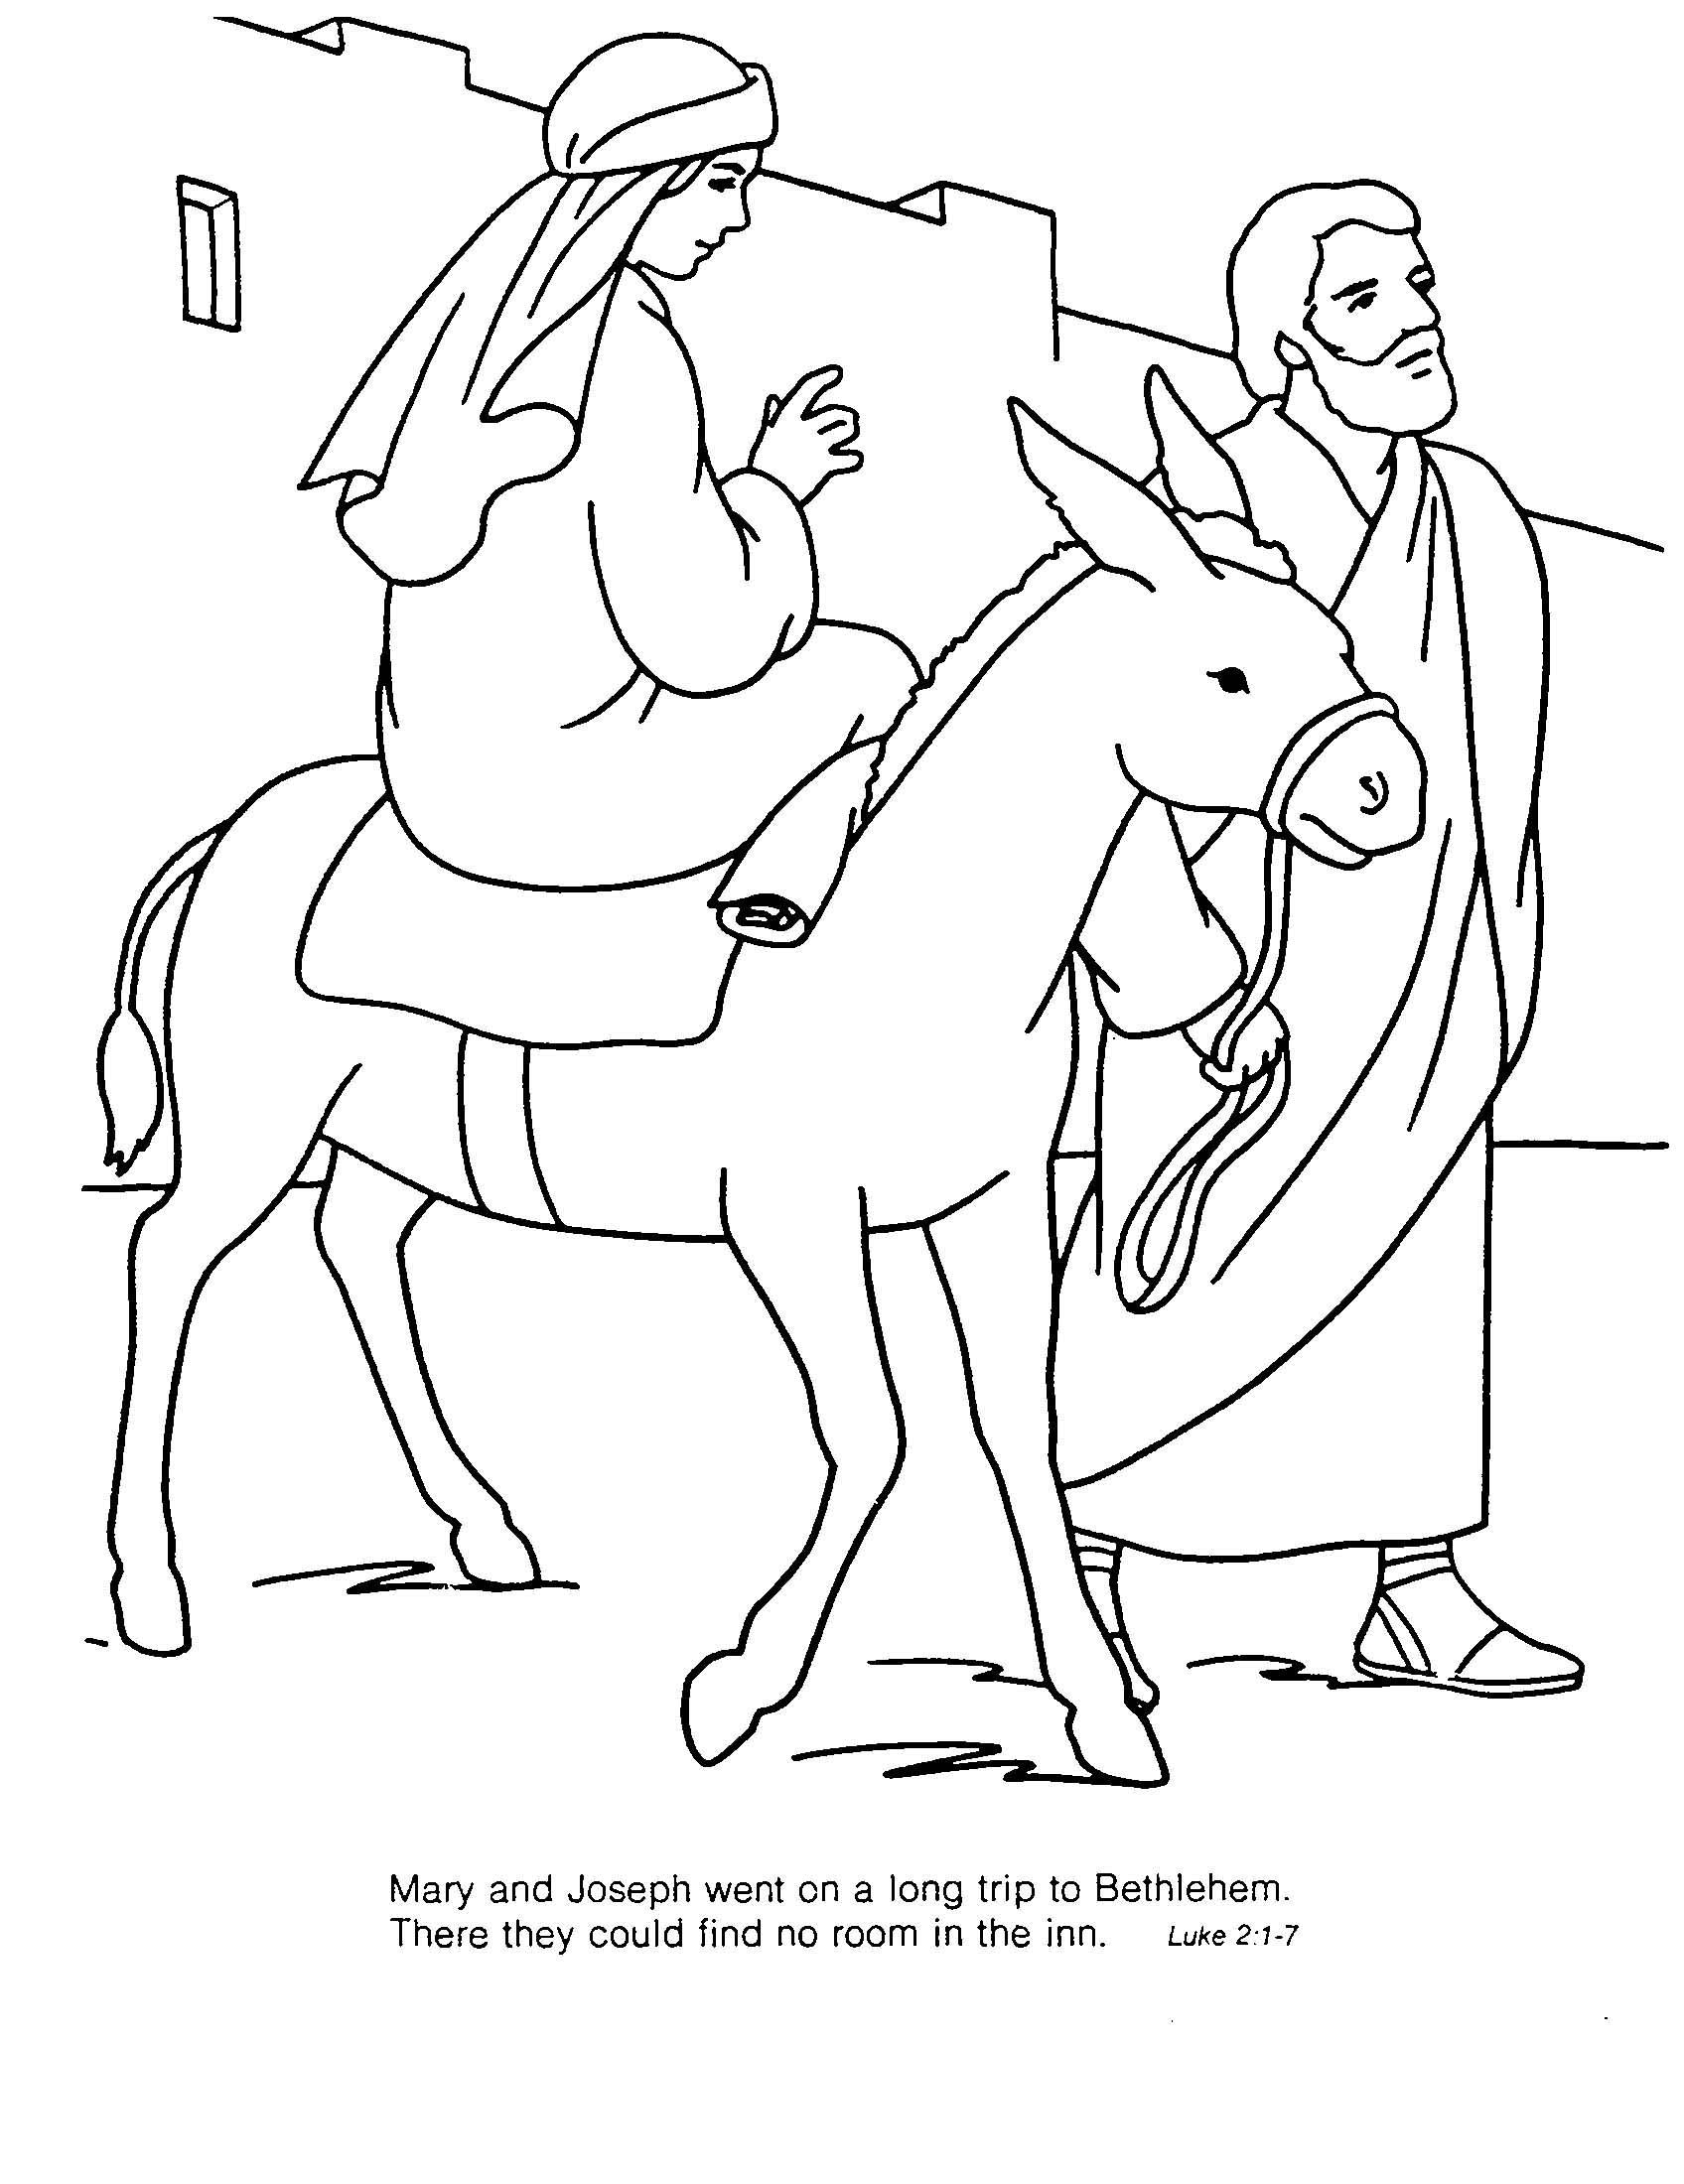 Coloring sheet mary and joseph bethlehem - Mary And Joseph Coloring Pages Az Coloring Pages